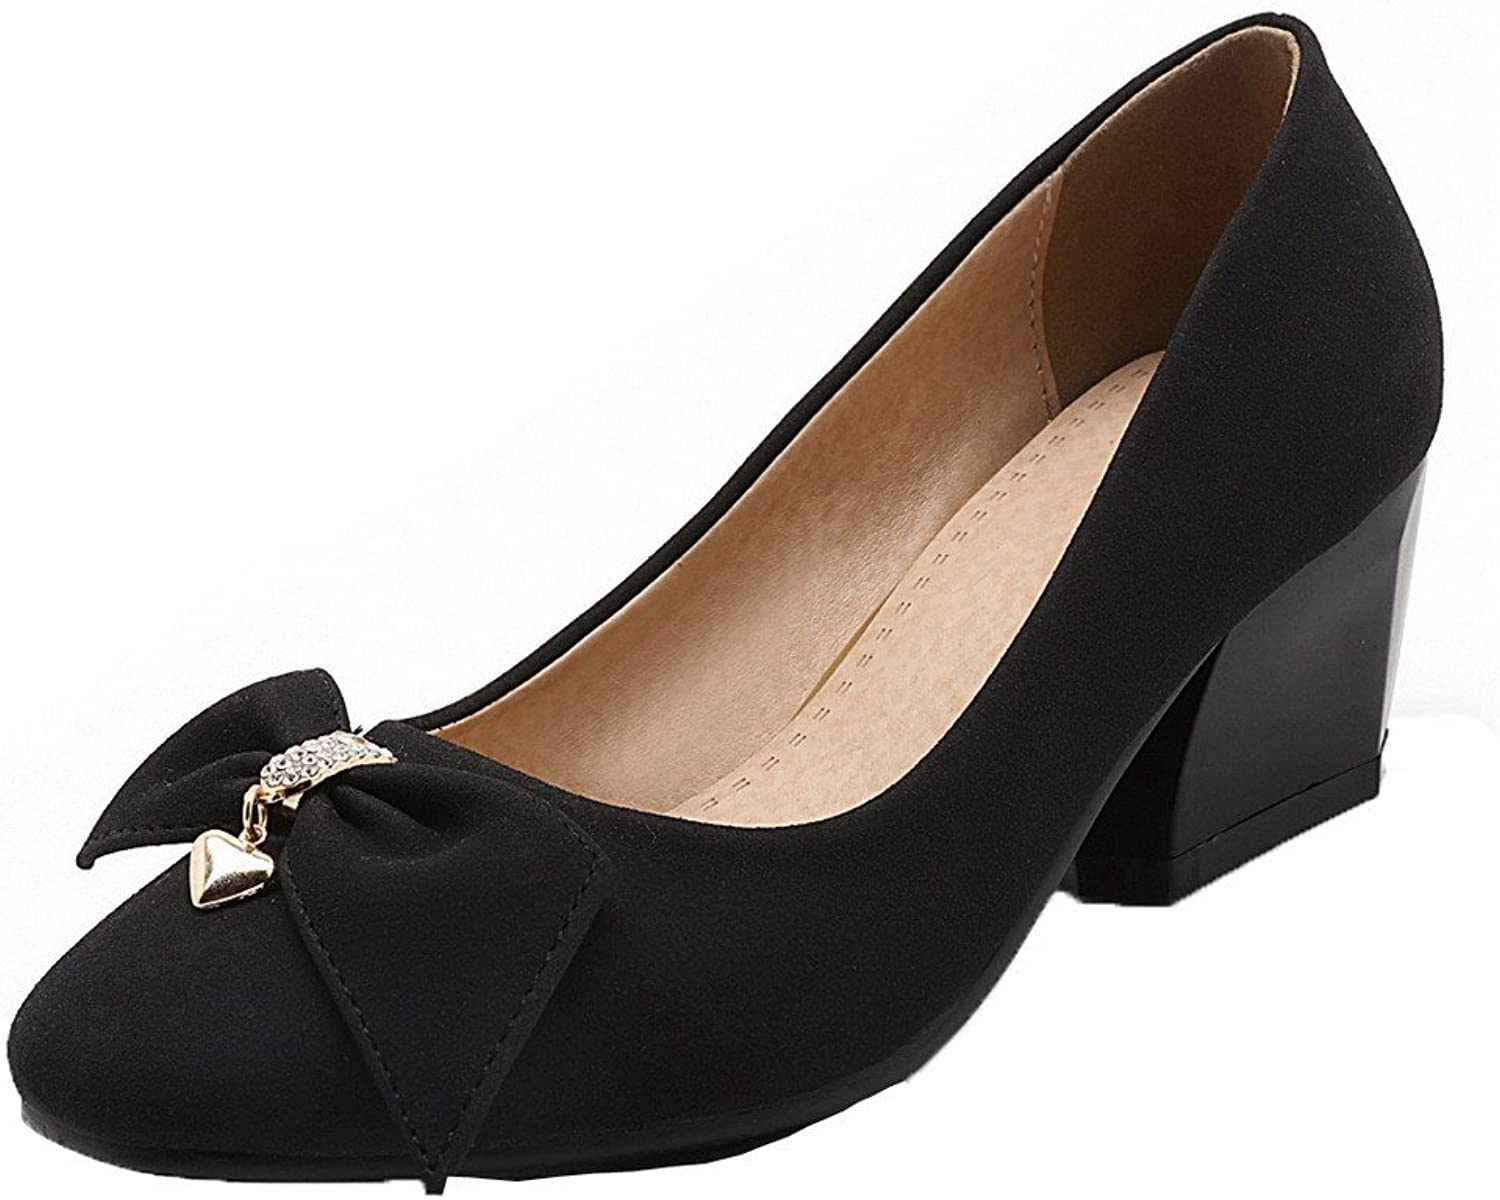 WeenFashion Women's Pull-On Kitten-Heels PU Solid Square Toe Pumps-shoes